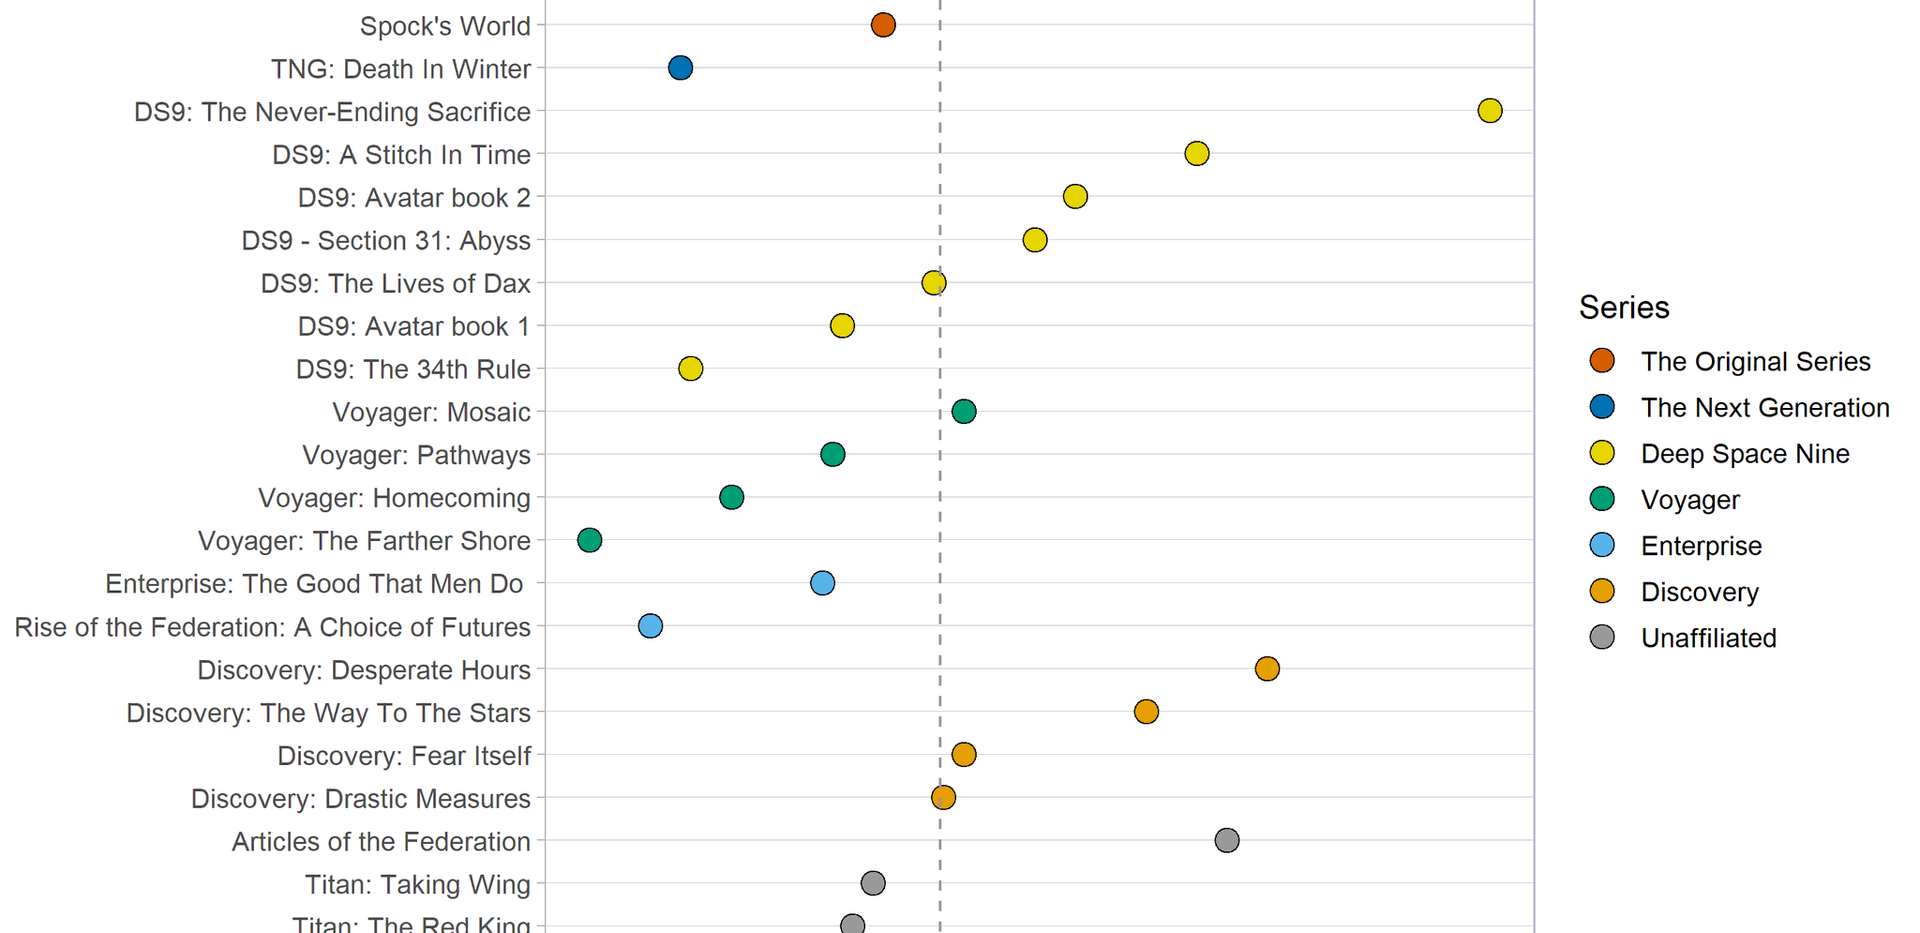 Average score for each novel, grouped by series (as of May 2019)